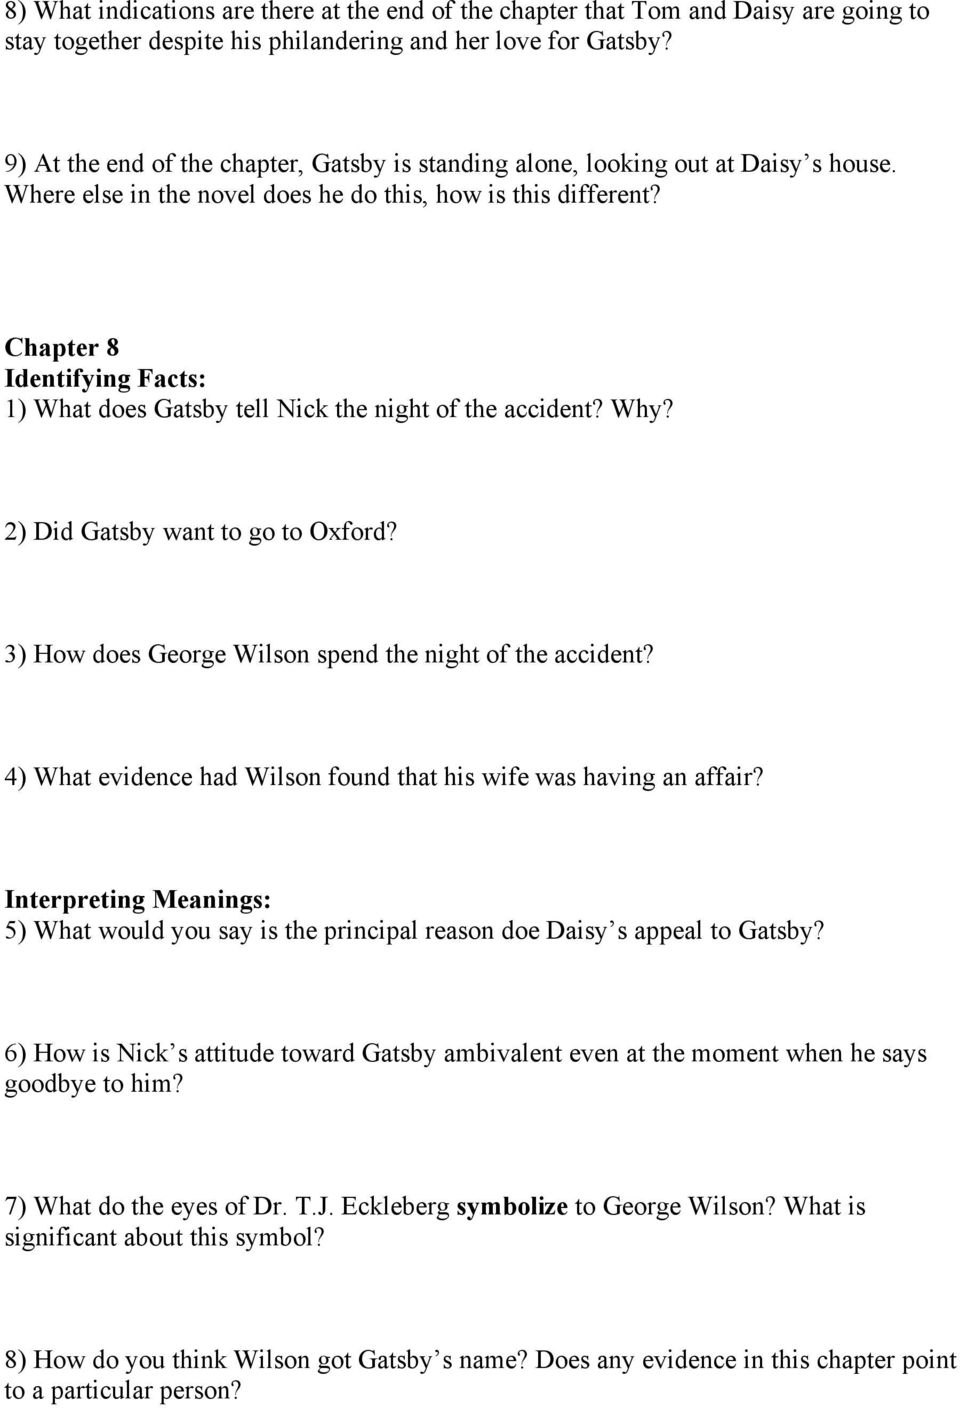 Chapter 8 1) What does Gatsby tell Nick the night of the accident? Why? 2) Did Gatsby want to go to Oxford? 3) How does George Wilson spend the night of the accident?